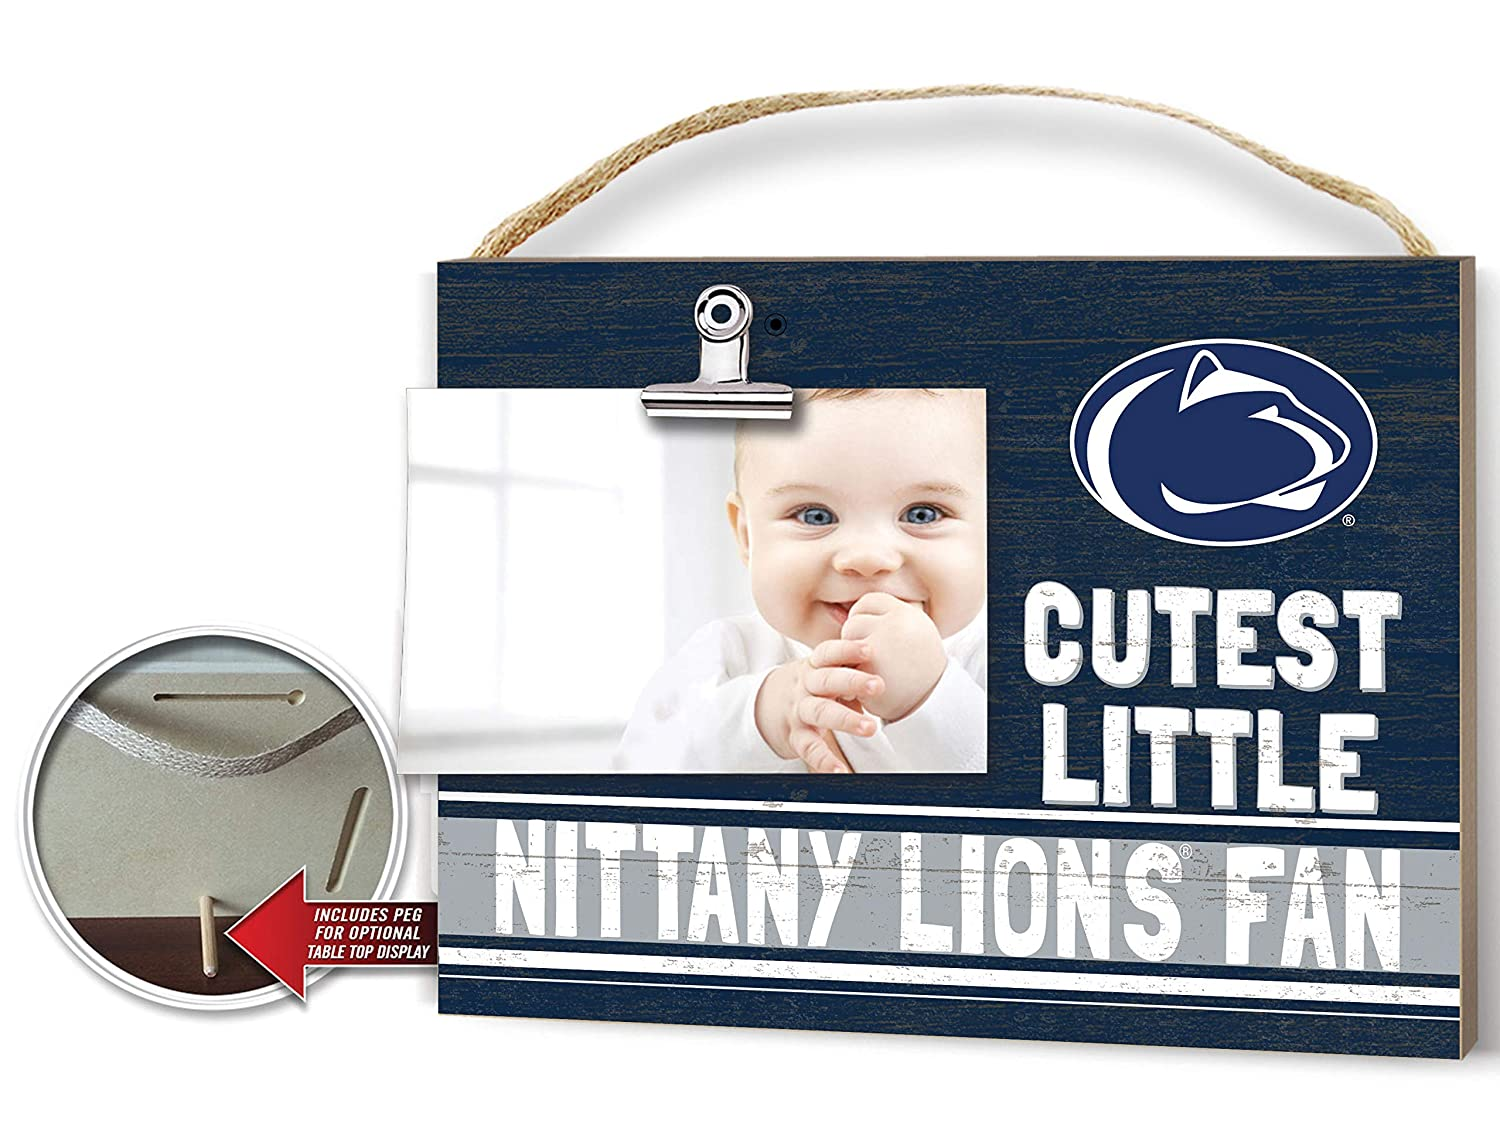 KH Sports Fan Clip It Colored Baby Logo Photo Frame Penn State Nittany Lions